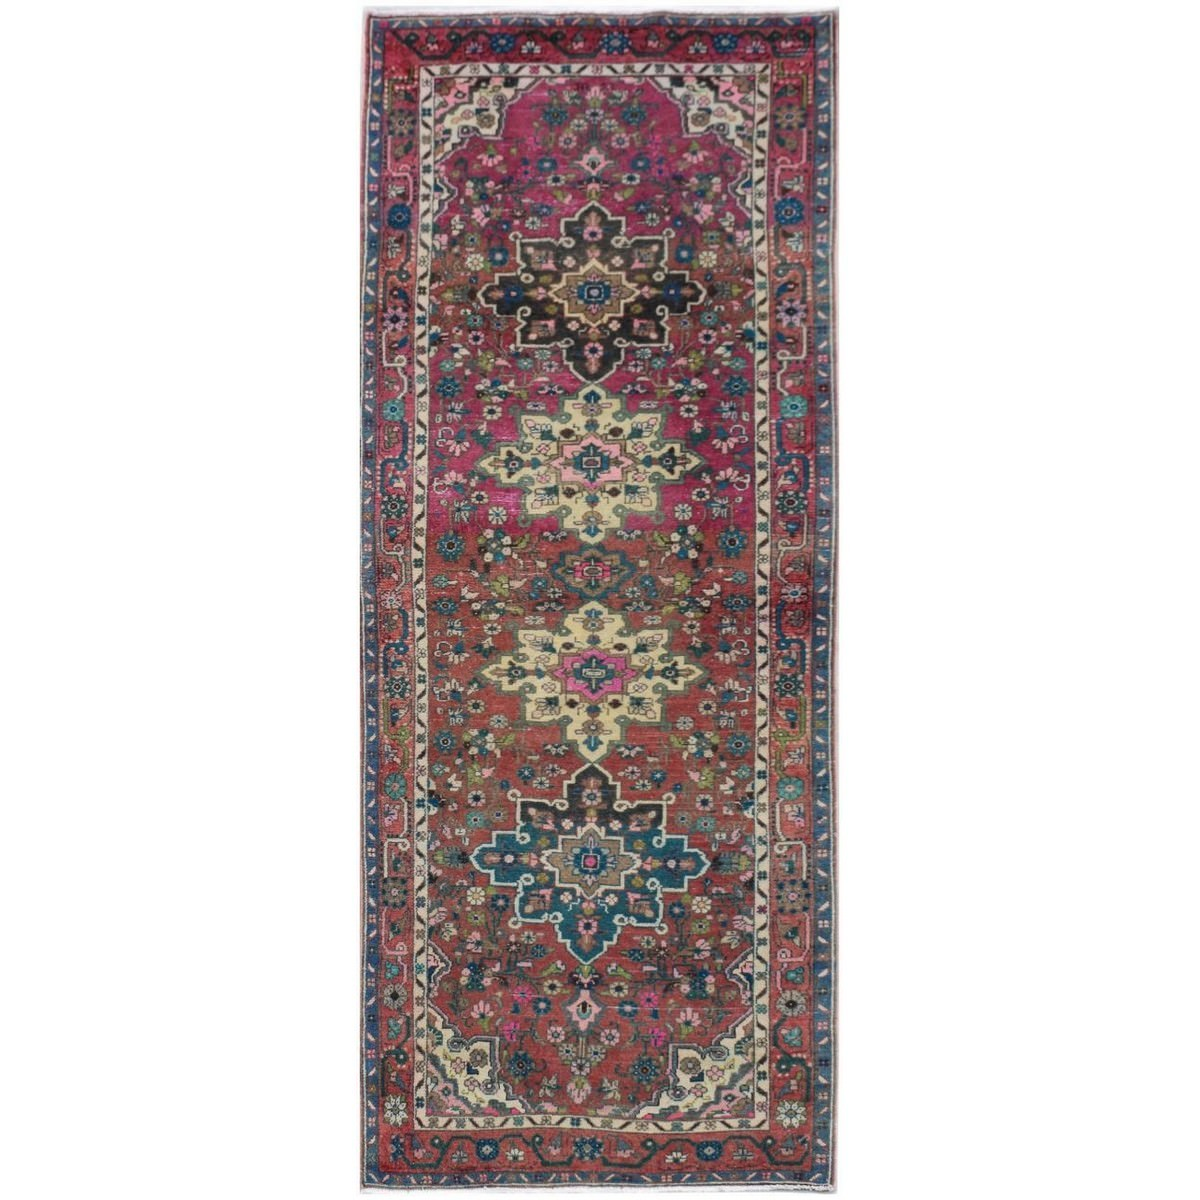 One of A Kind Eman Hand Knotted Wool Persian Runner Rug, 288x105cm